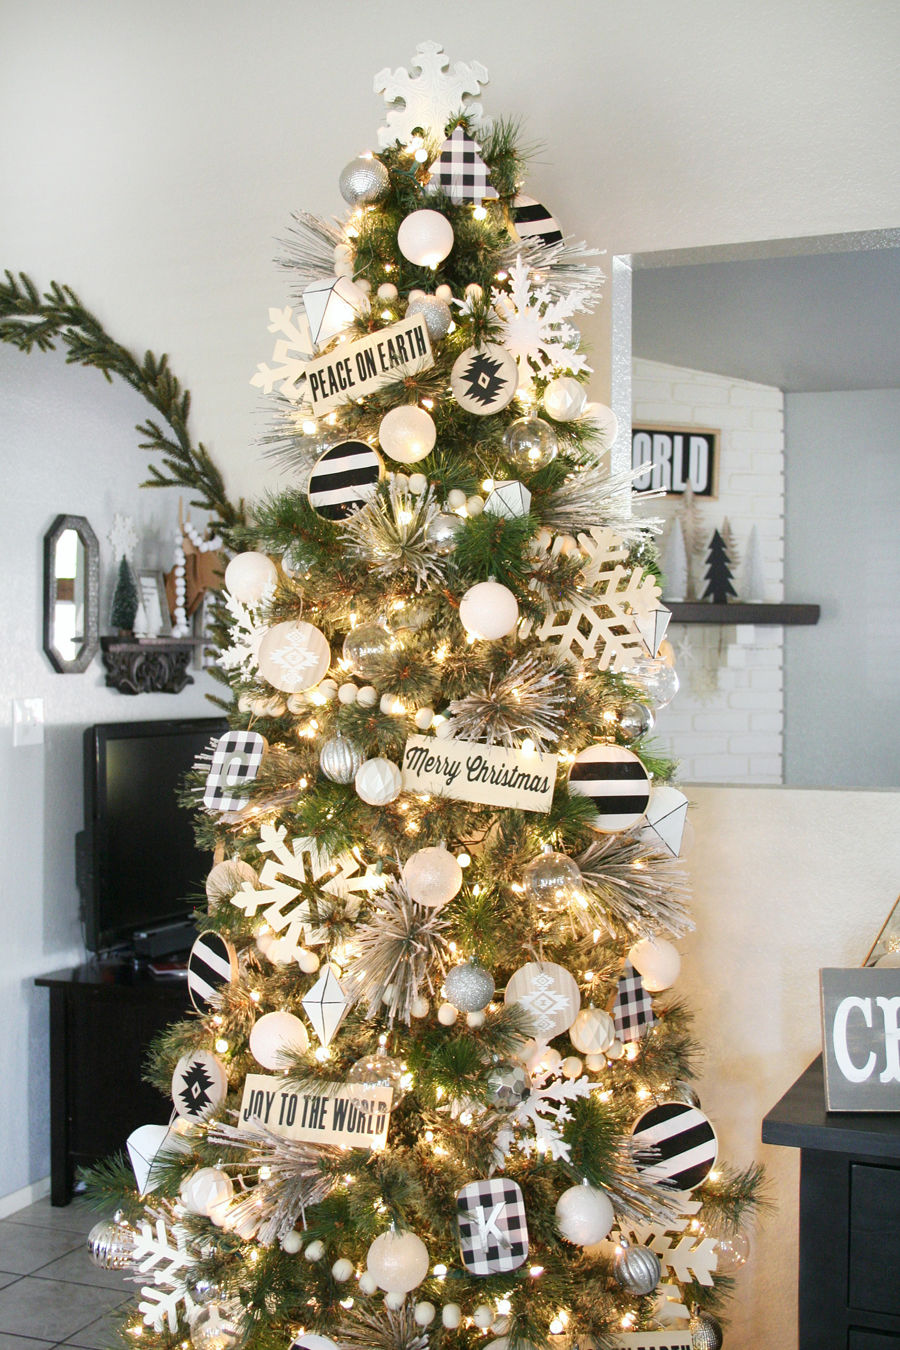 Black And White Christmas Tree Decor Pictures, Photos, and